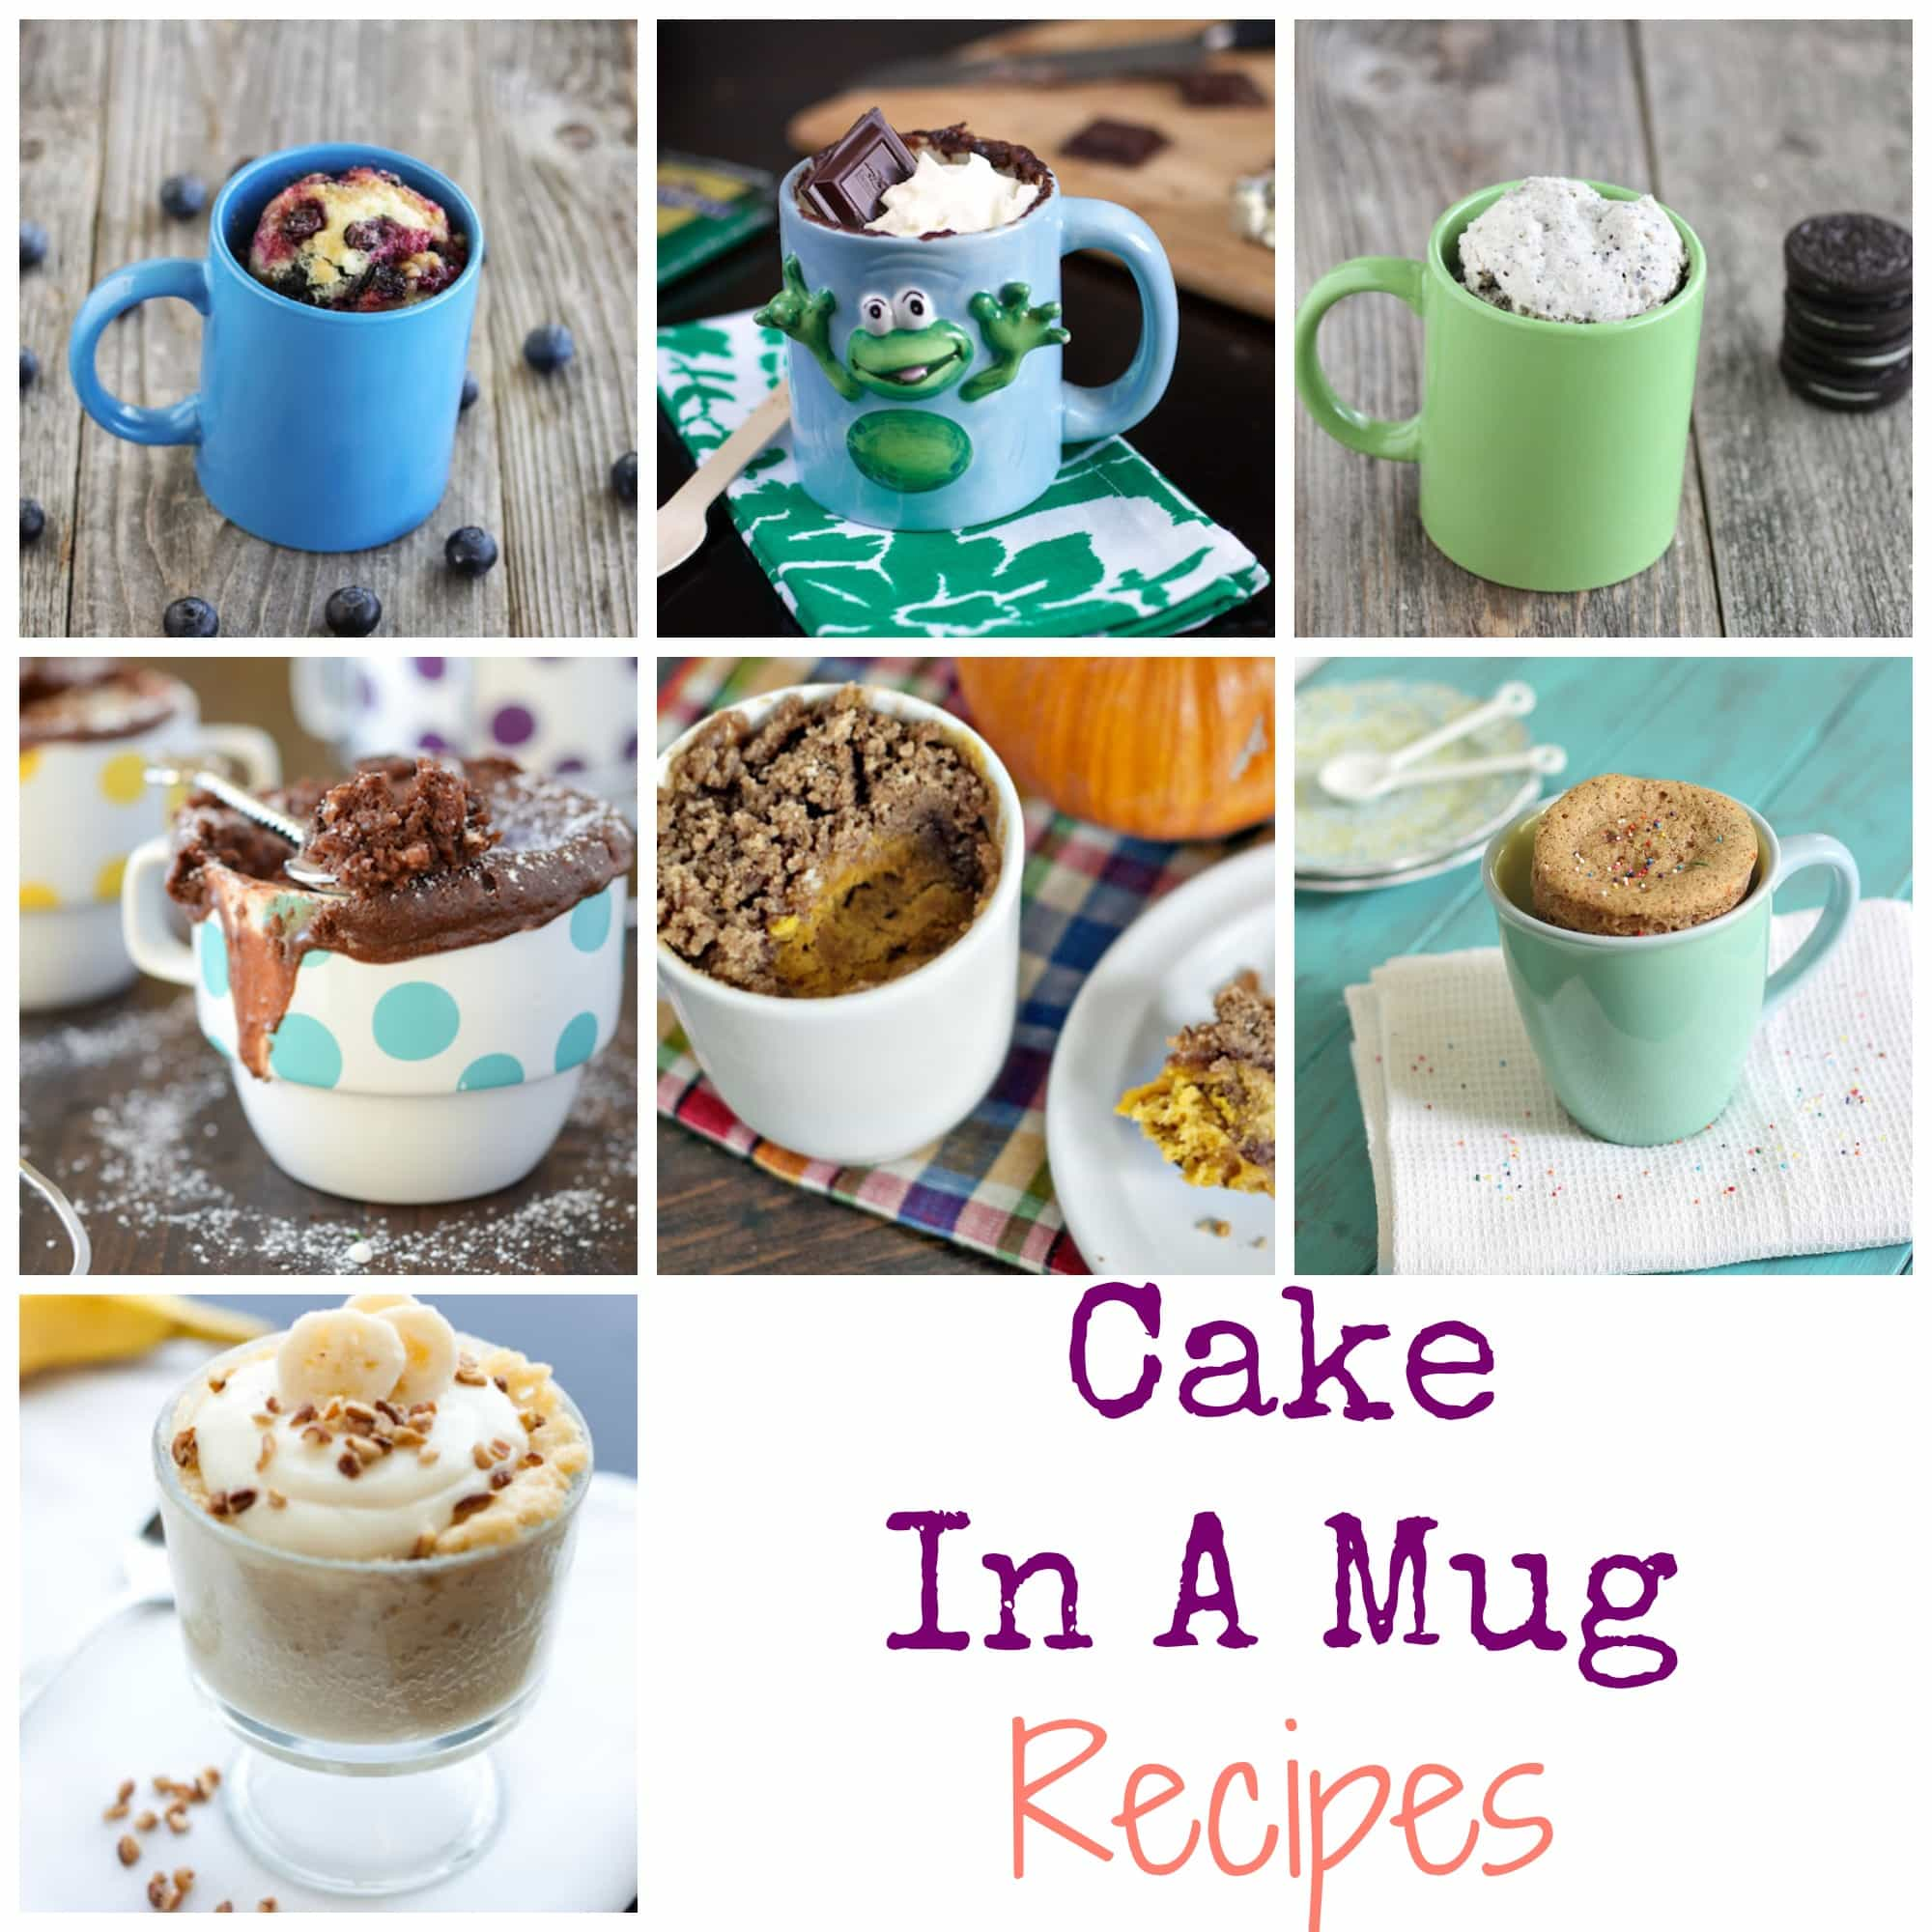 7 Cake In A Mug Recipes: Easy To Follow And Fun To Serve ...